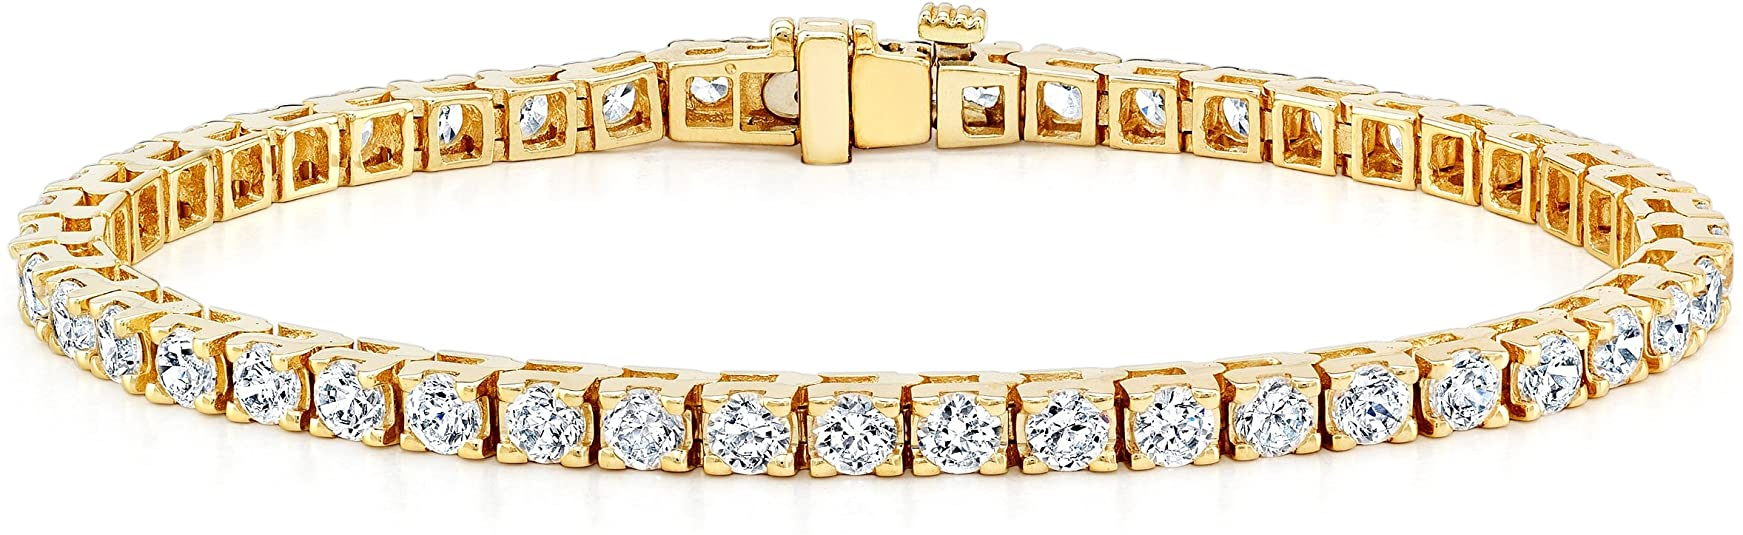 Diamond Tennis Bracelet Cost